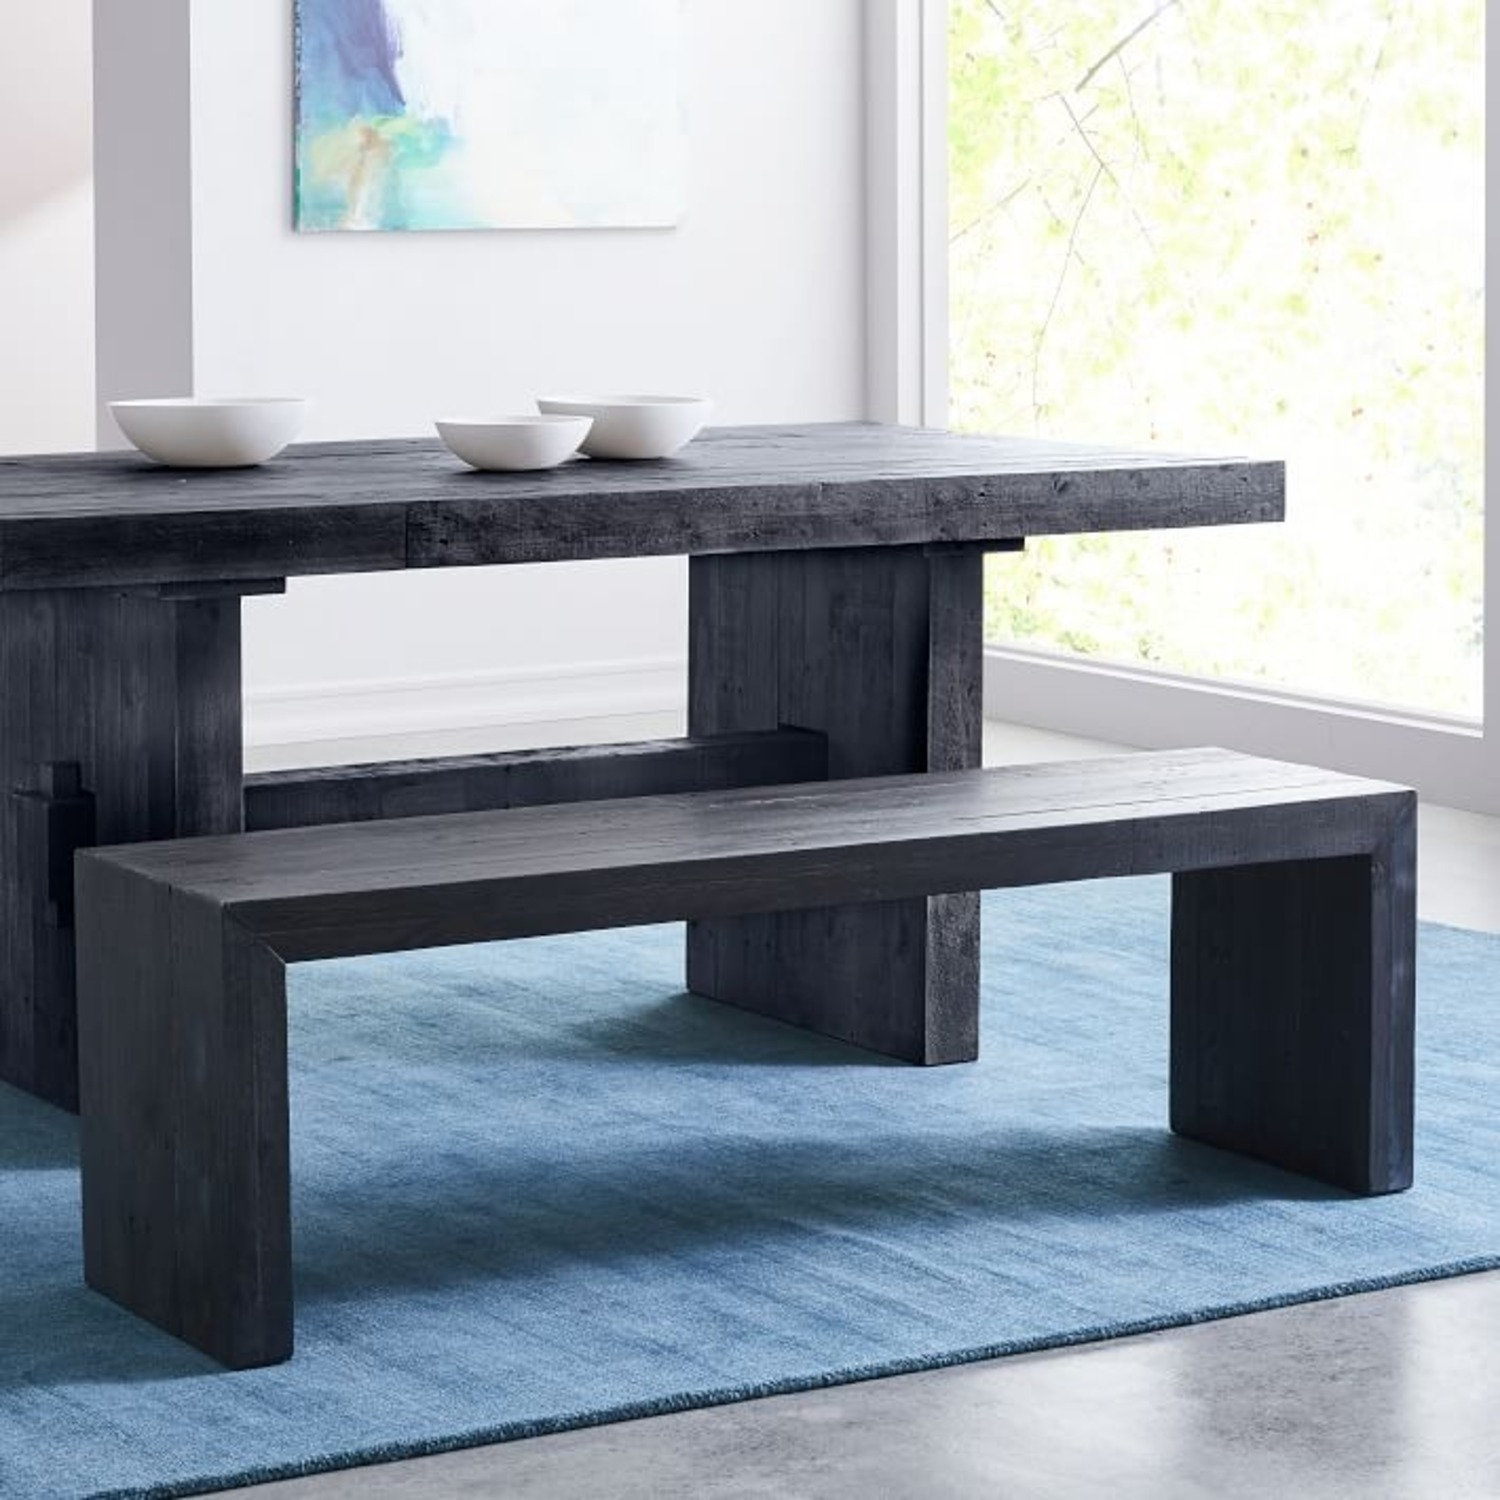 West Elm Emmerson Dining Bench - image-1